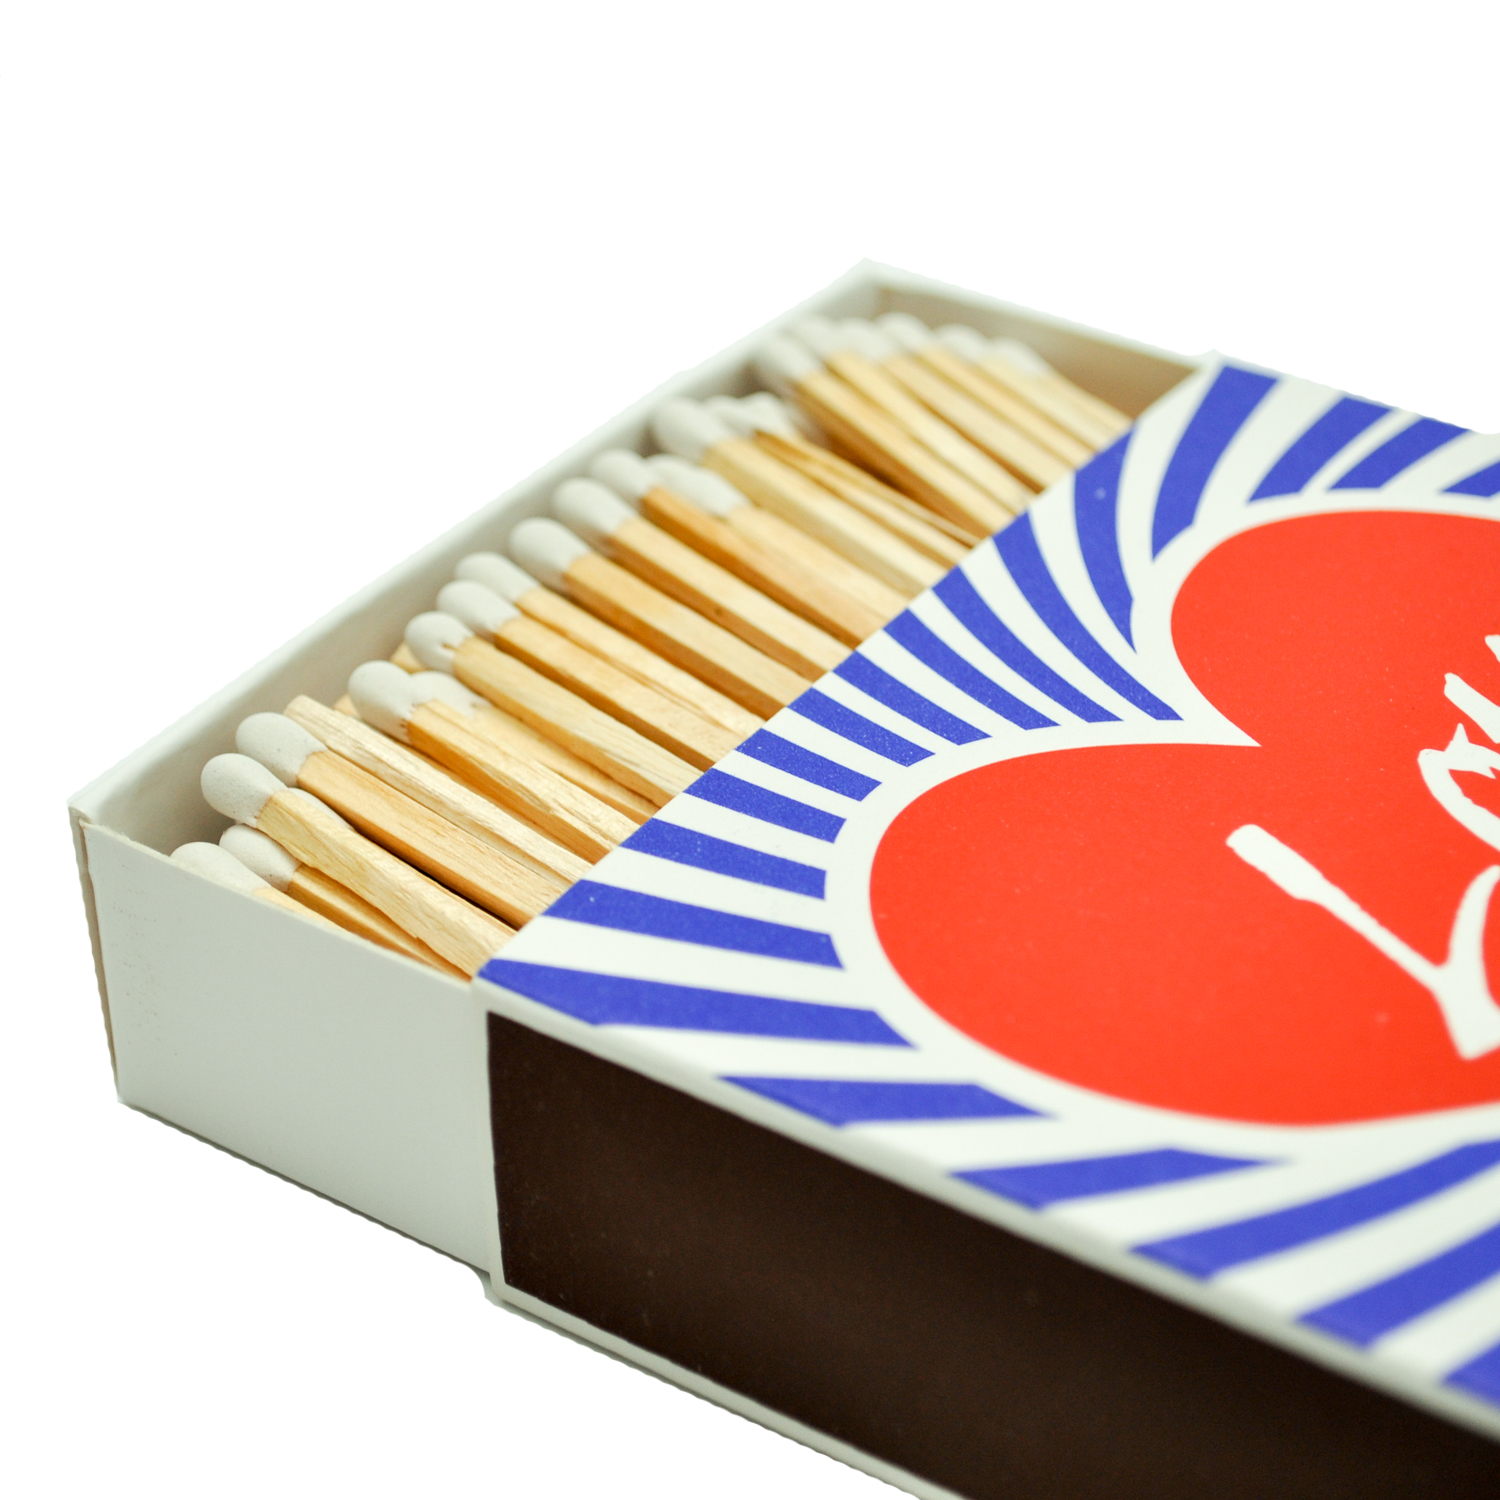 Archivist 'Love' Matches